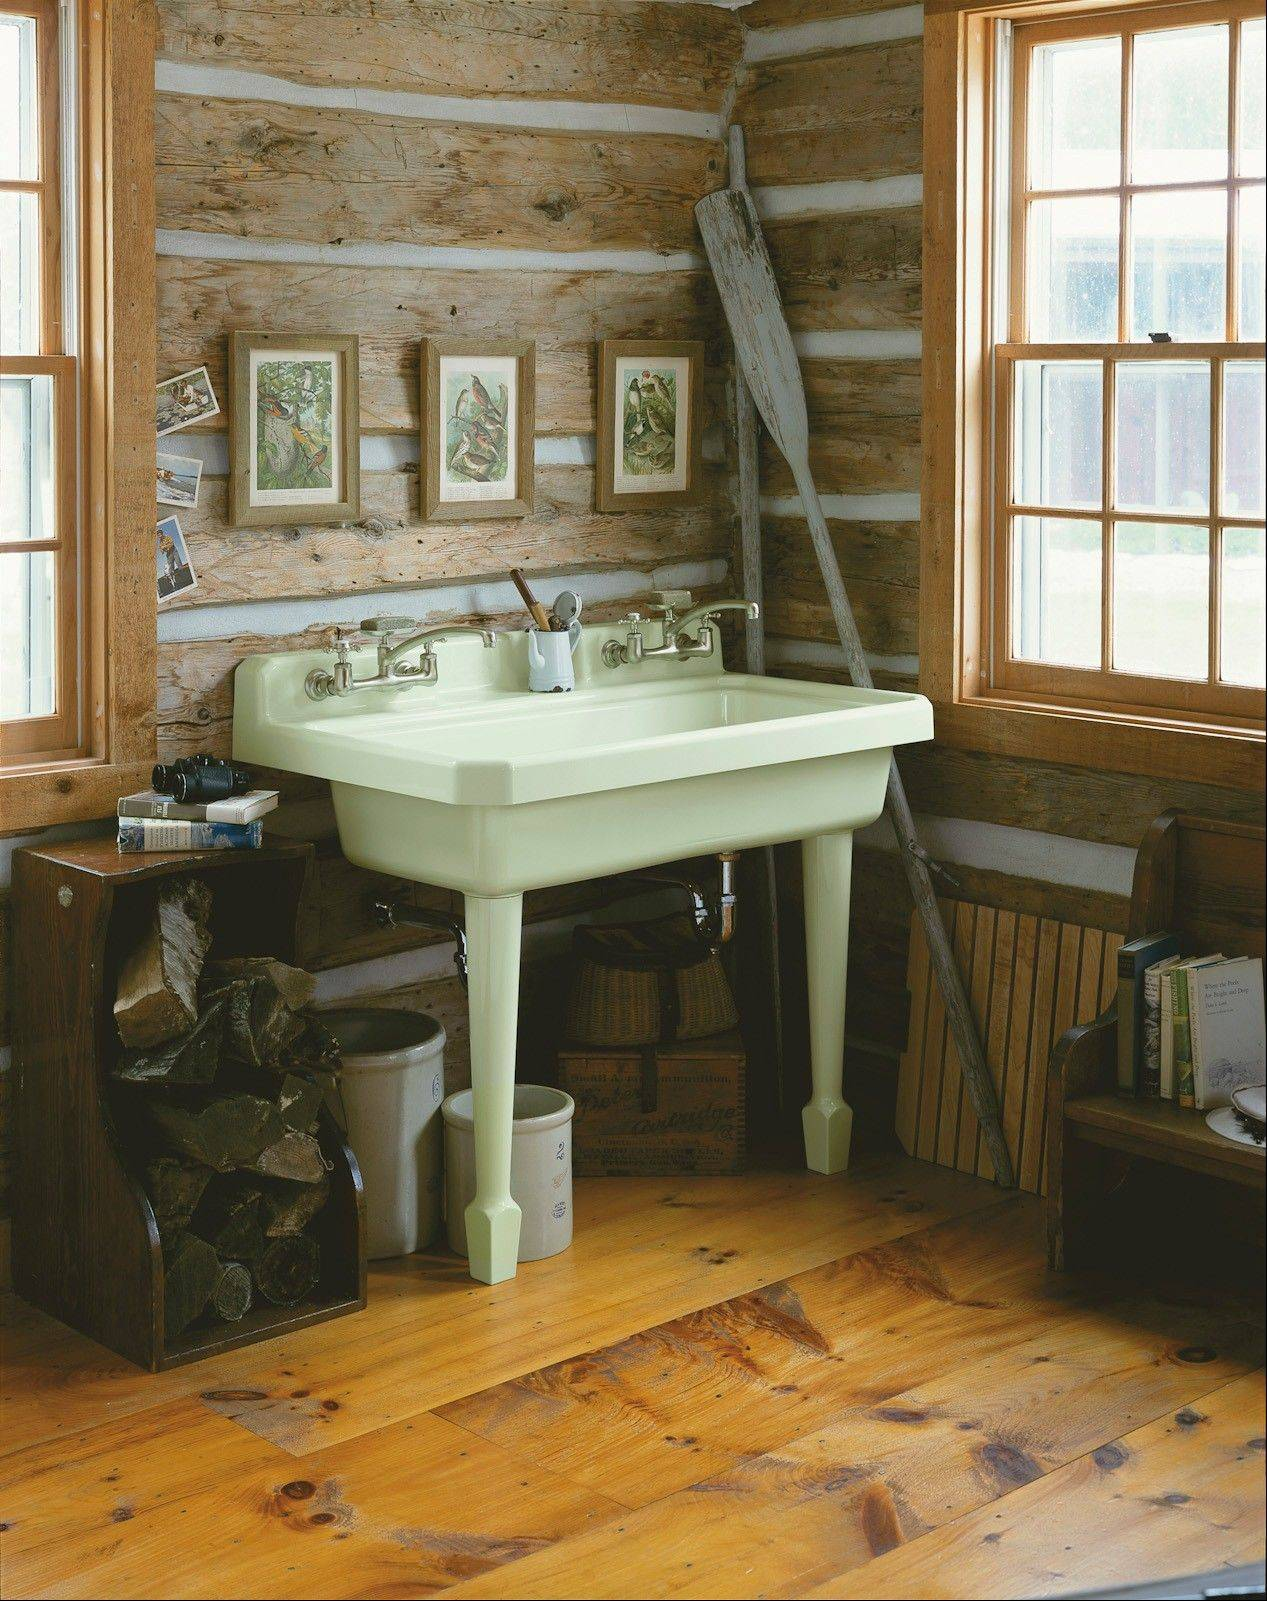 Utility sinks combine the larger work area needed for things like cleaning, gardening and laundry, but they also are designed to add beauty and color to a space.